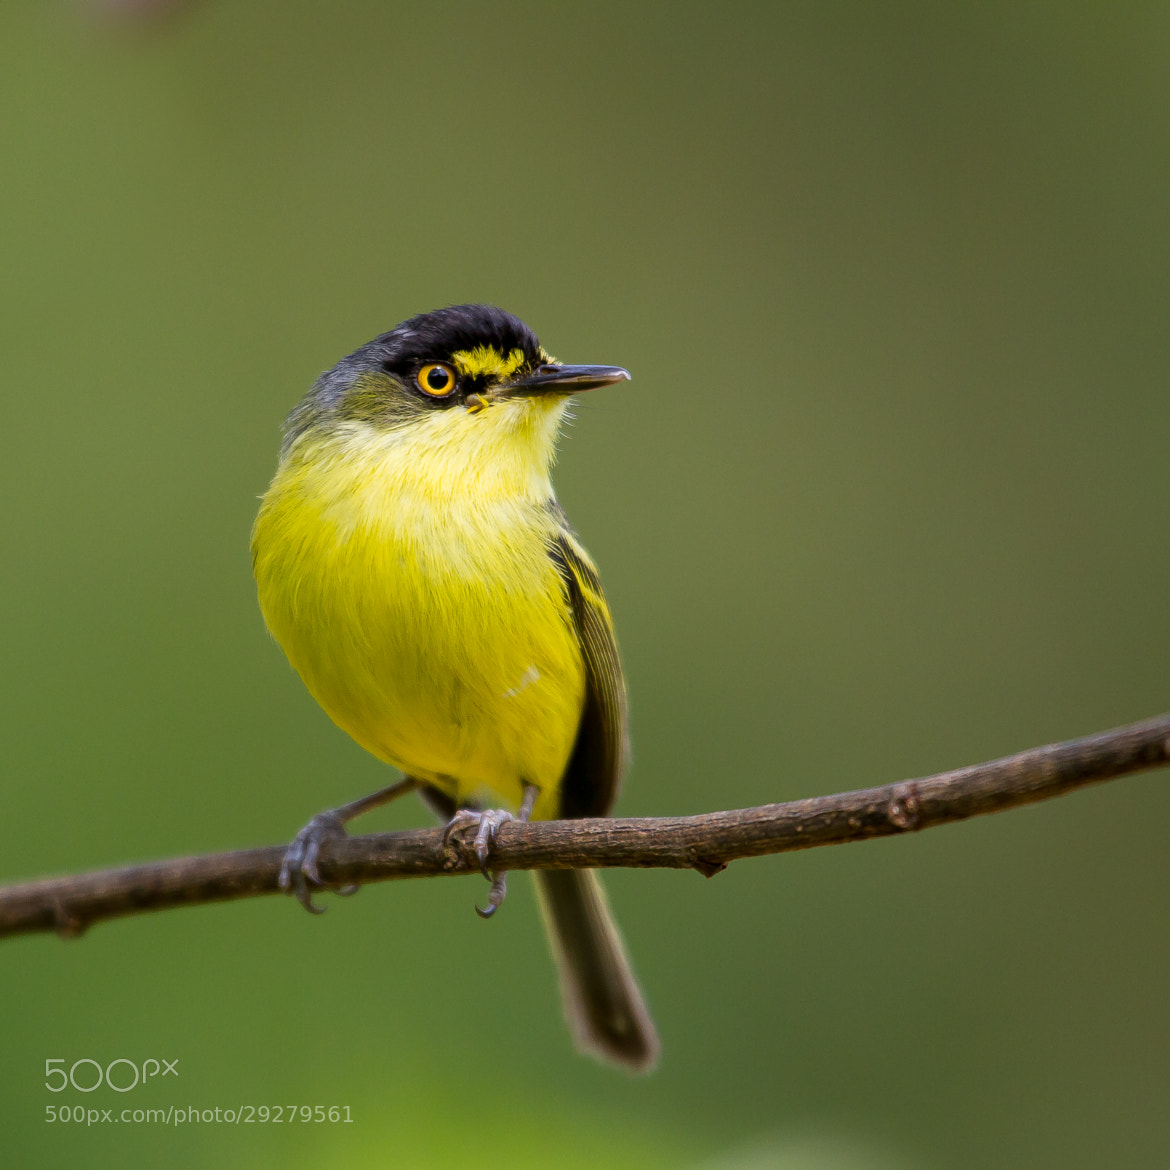 Photograph Yellow-lored Tody-Flycatcher (Todirostrum poliocephalum) by Bertrando Campos on 500px